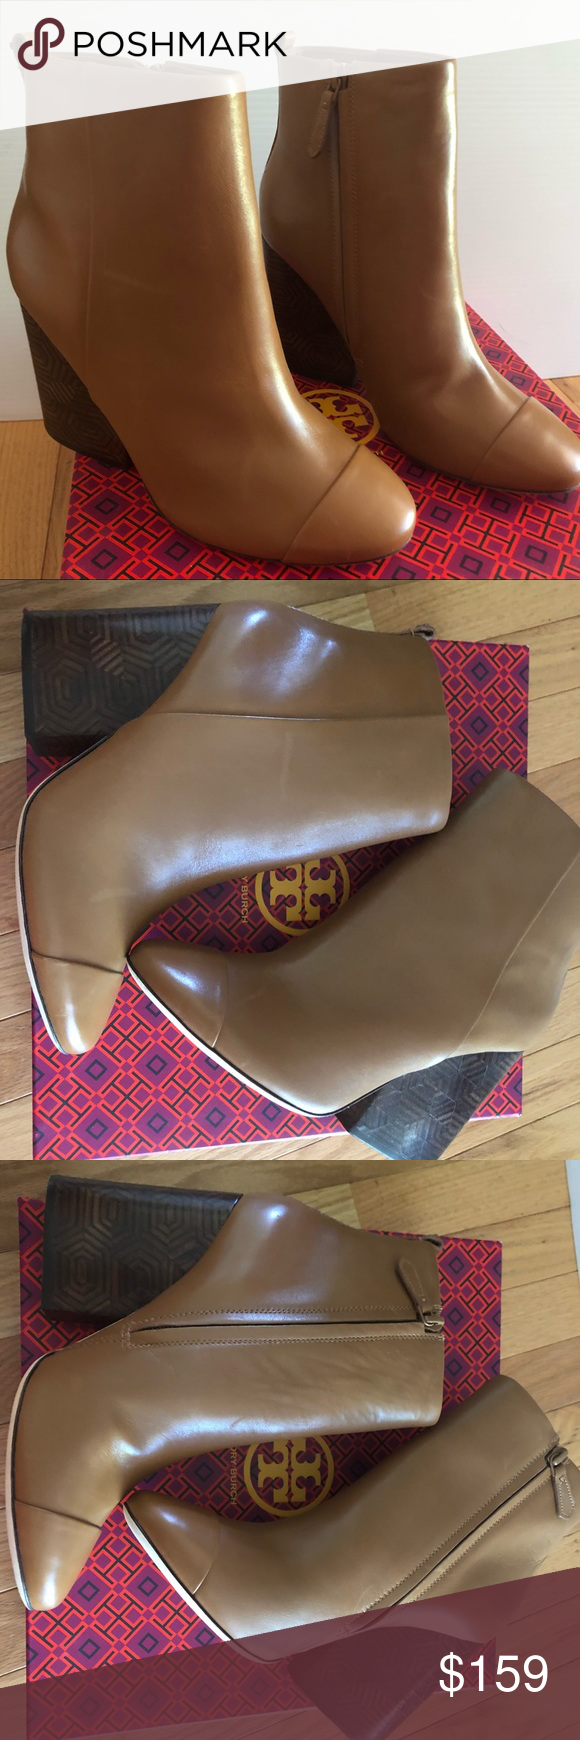 b4ea751dffd7 Tory Burch shoes size 8 Women s Tory Burch Grove 100mm royal tan Bootie  size 8. New in box. They may show small signs of being tried on.